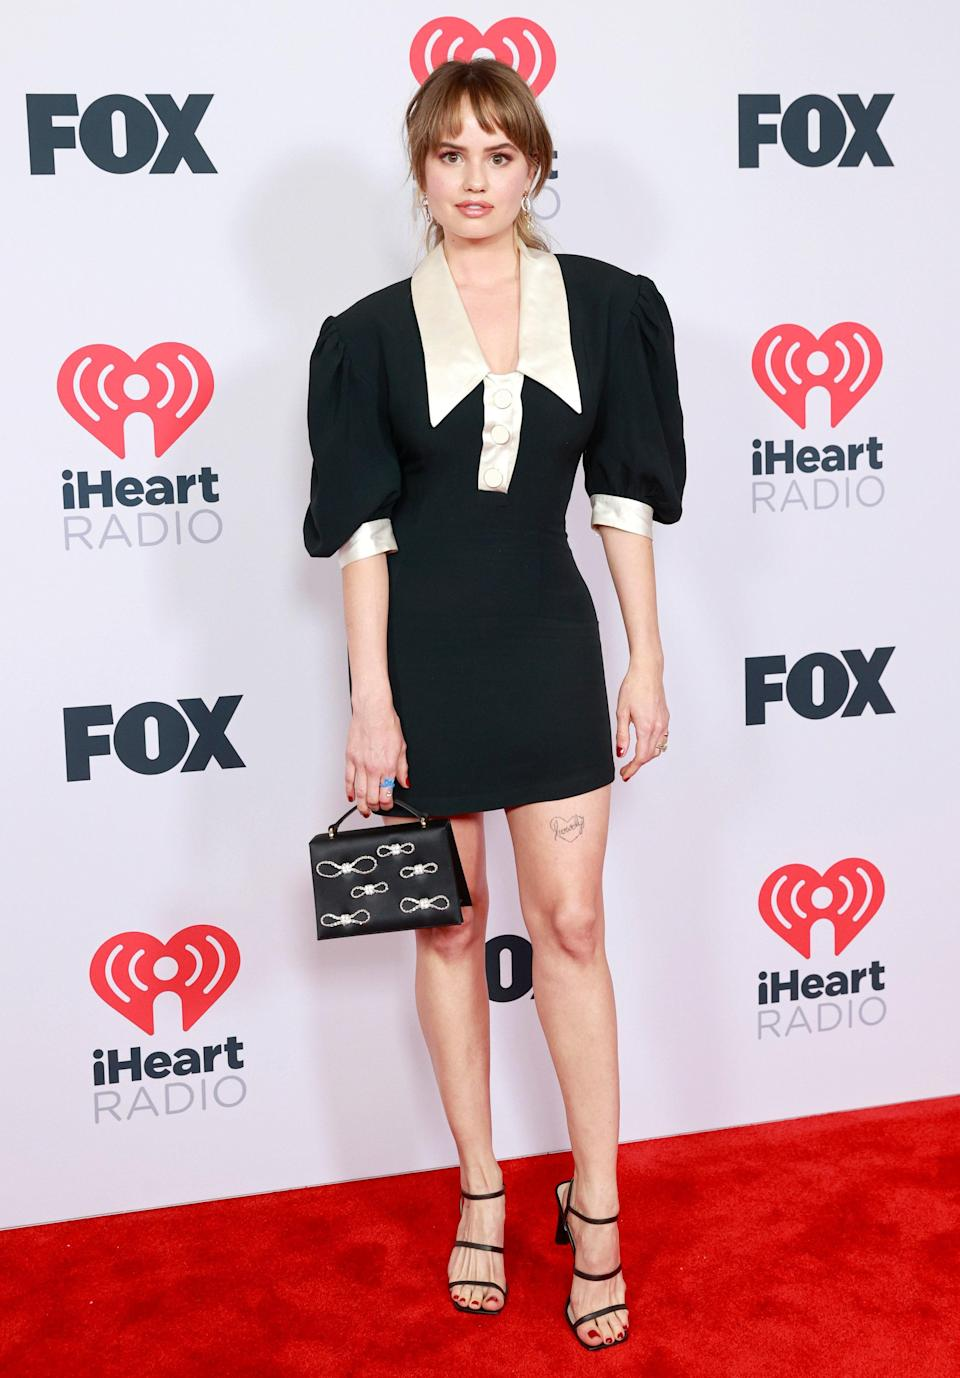 Debby Ryan was also present and rocked a fitted mini dress with oversized sleeves. Her bow mini bag was a sweet touch.